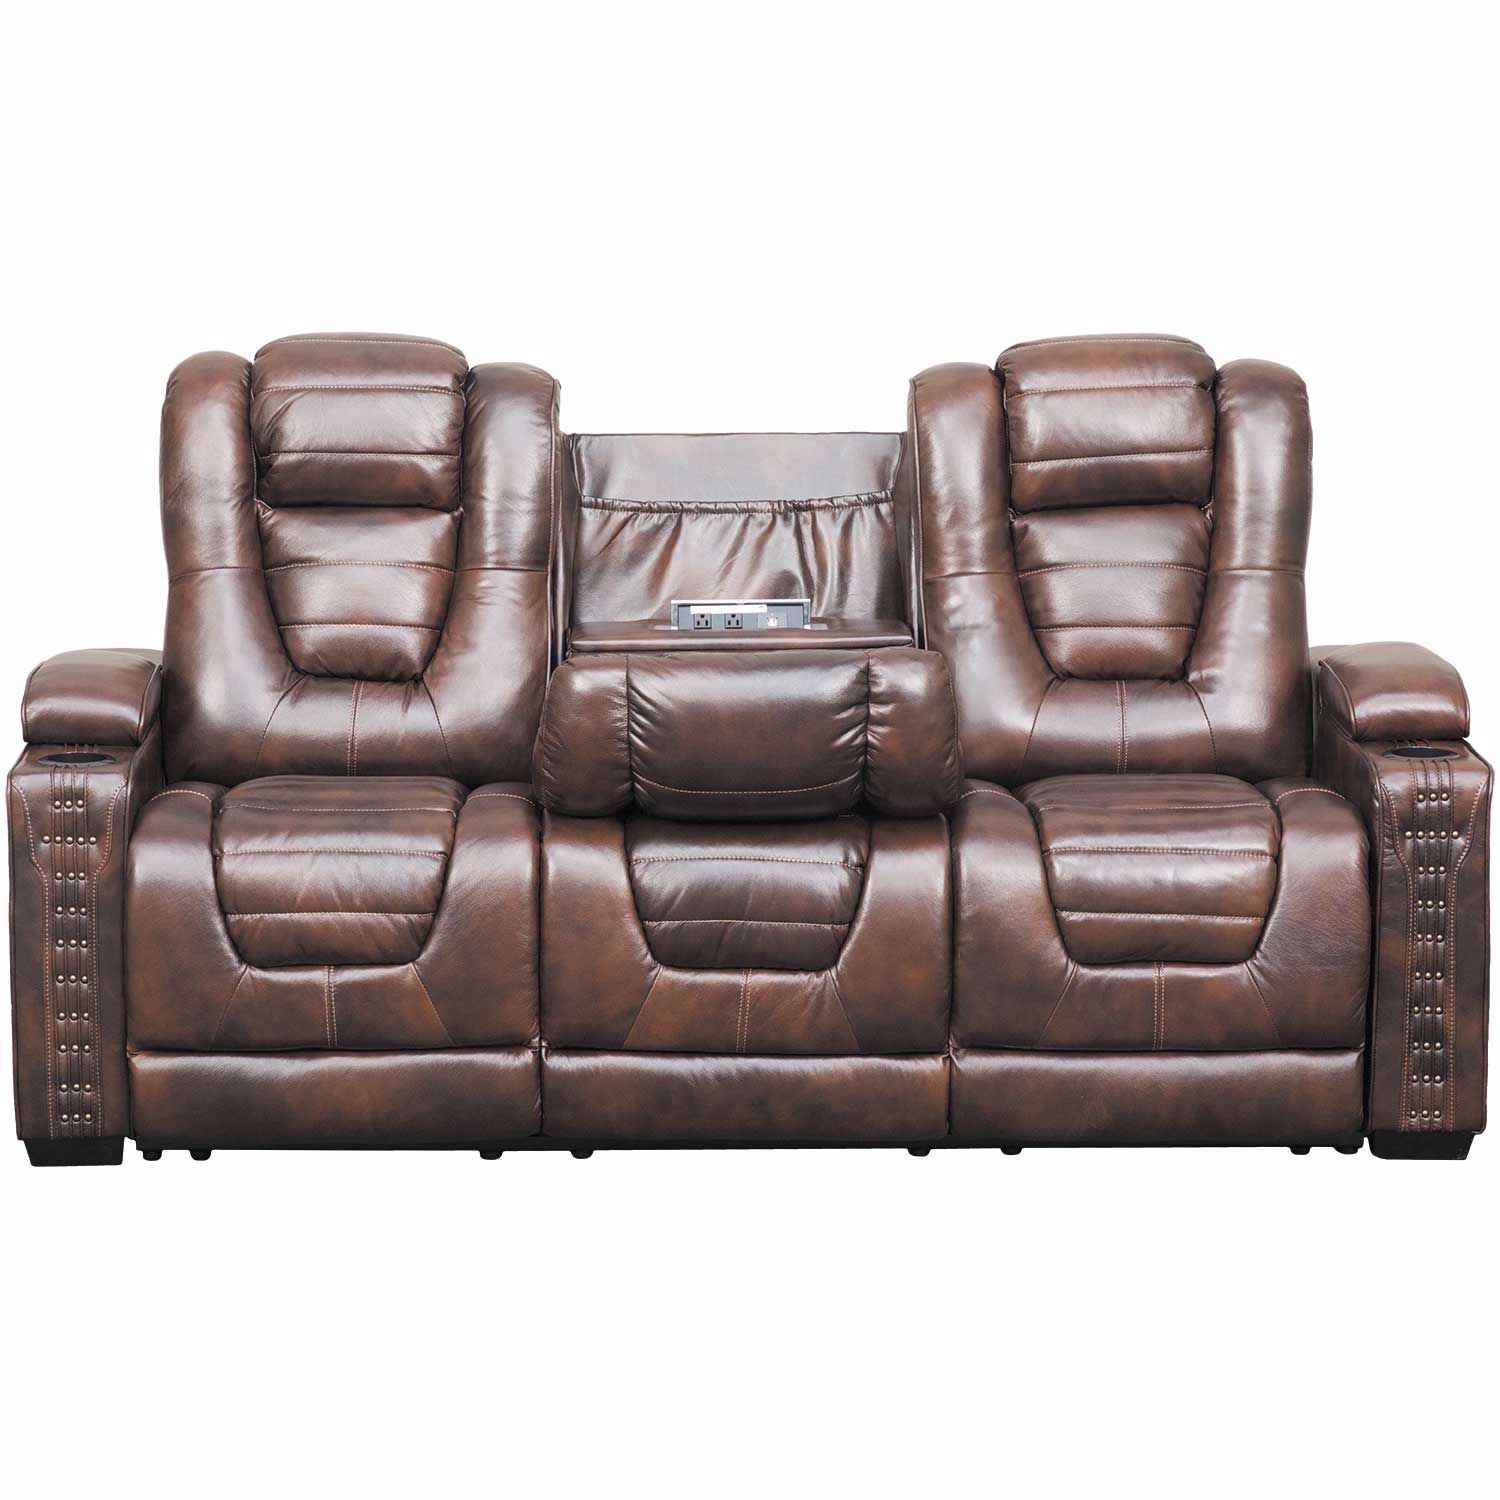 Miraculous Big Chief Power Reclining Sofa W Drop Table And Adjustable Headrest Pdpeps Interior Chair Design Pdpepsorg